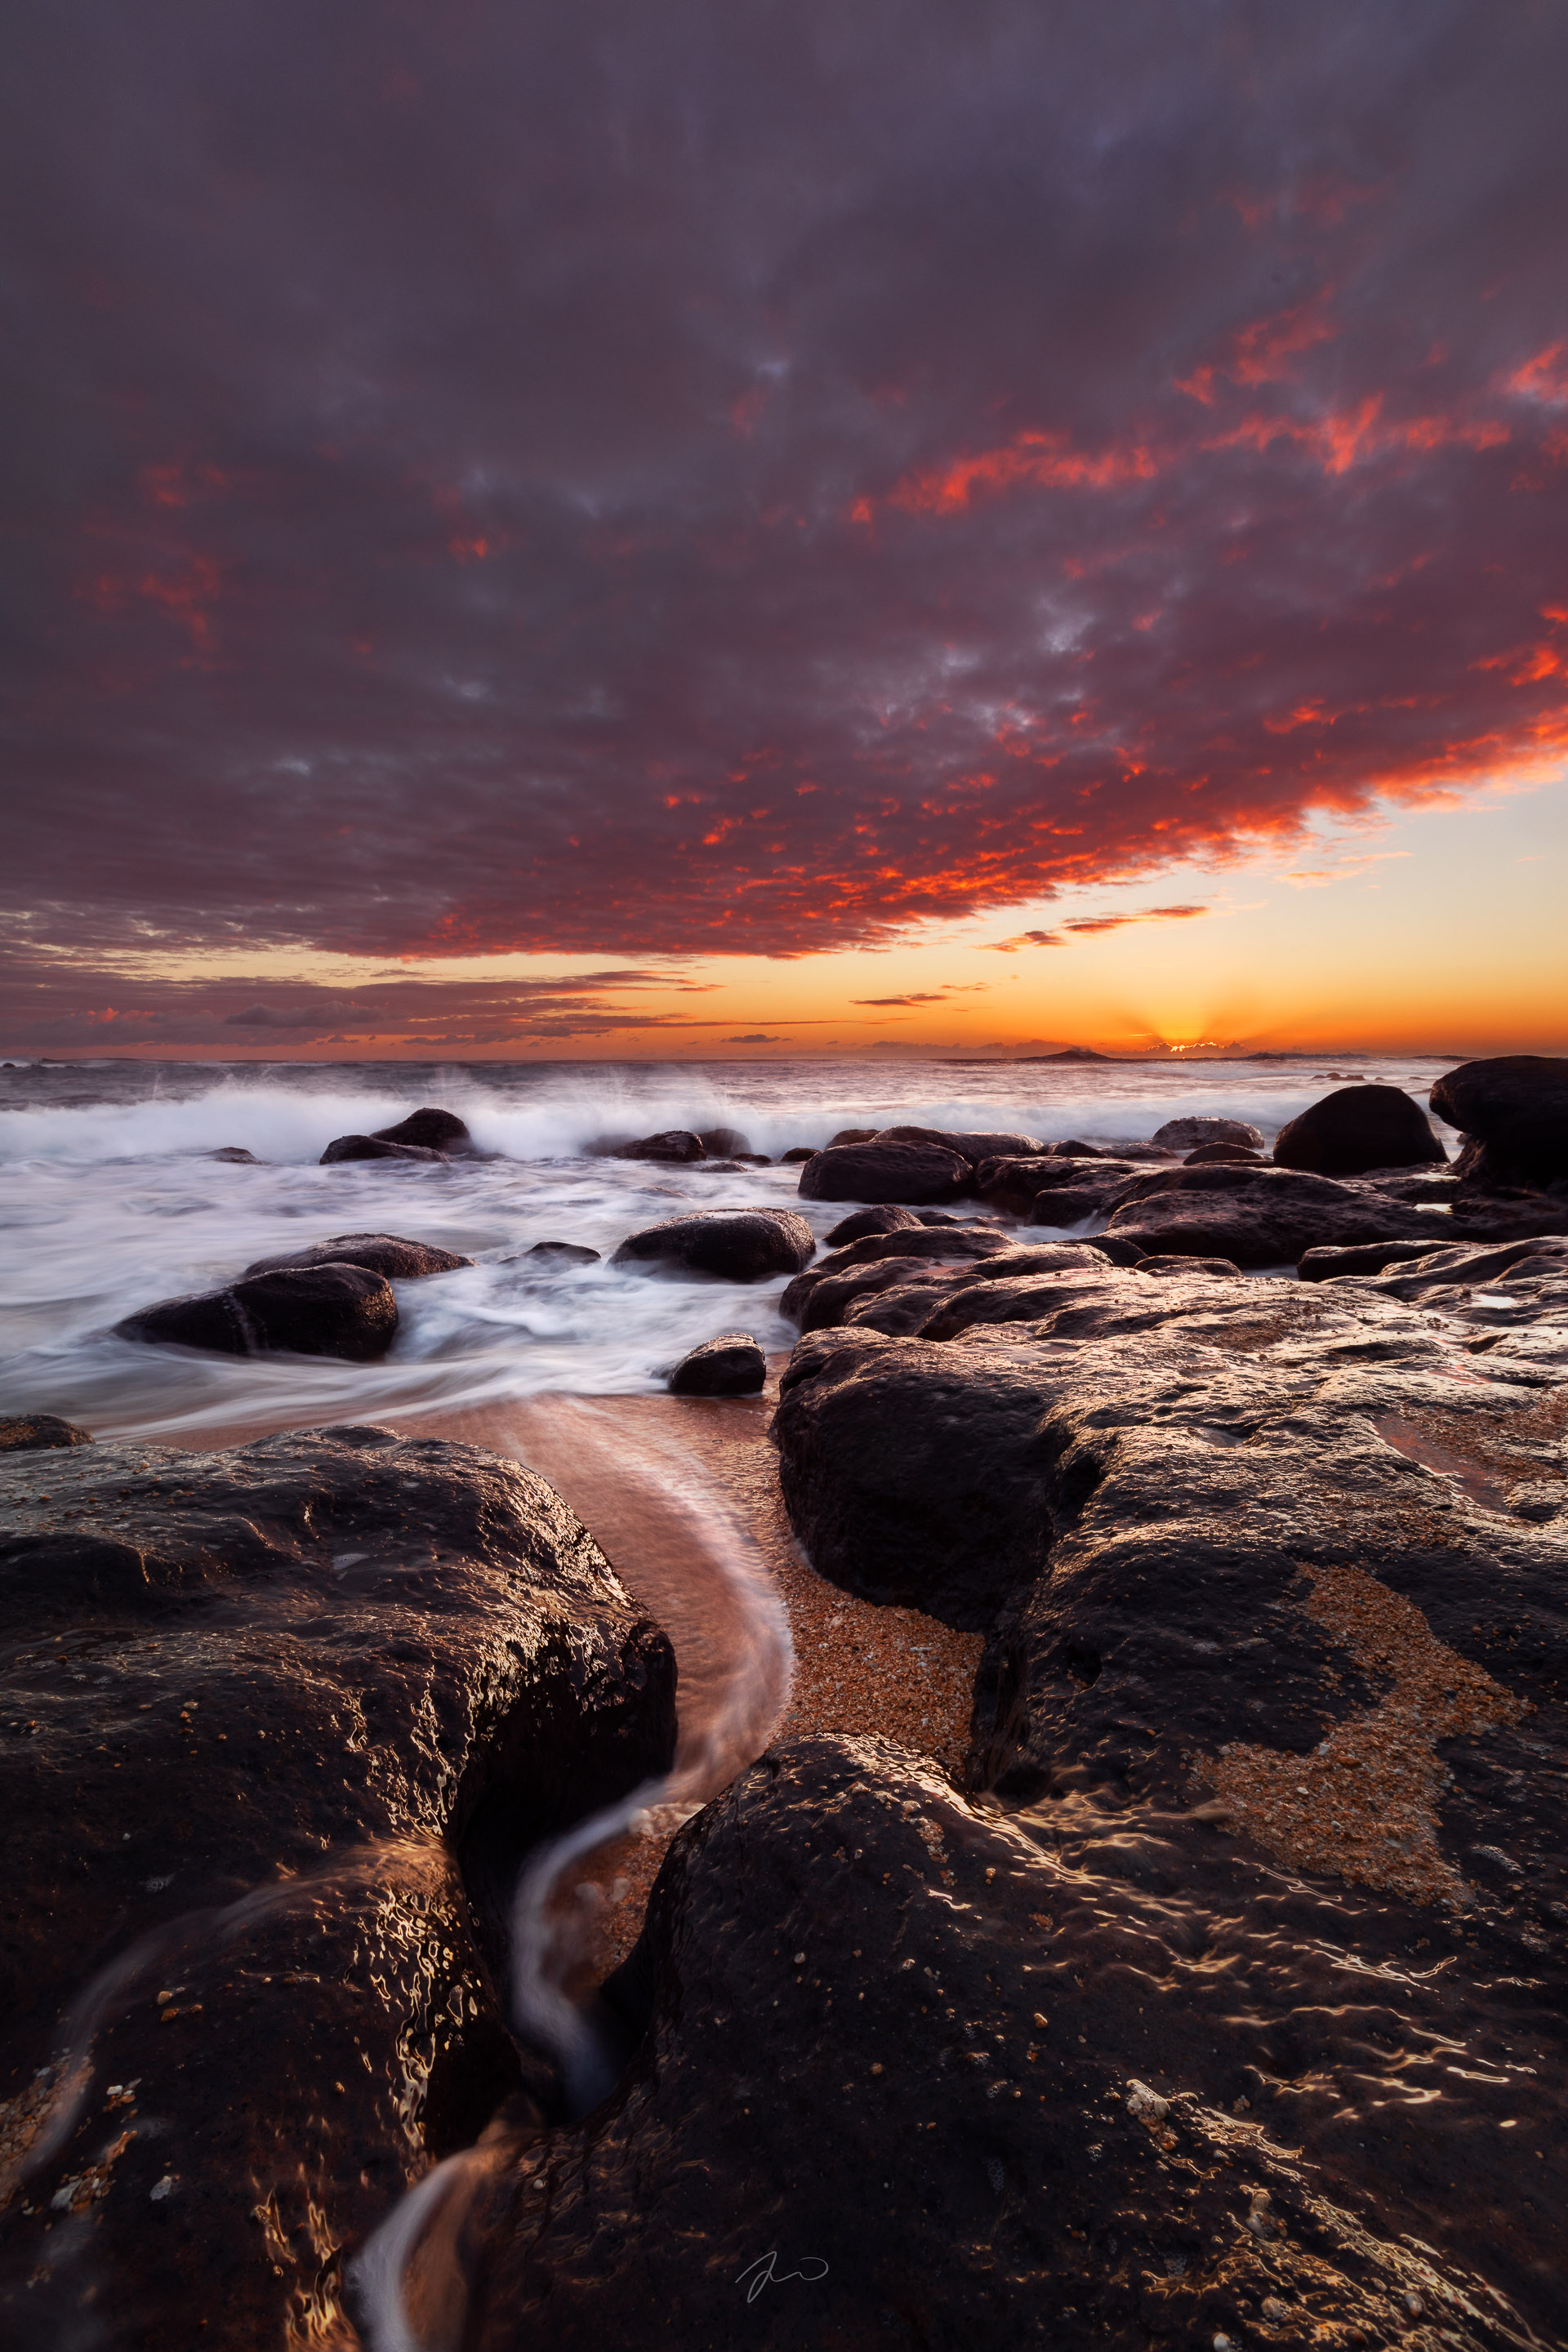 beach.sunrise.kauai-1.jpg